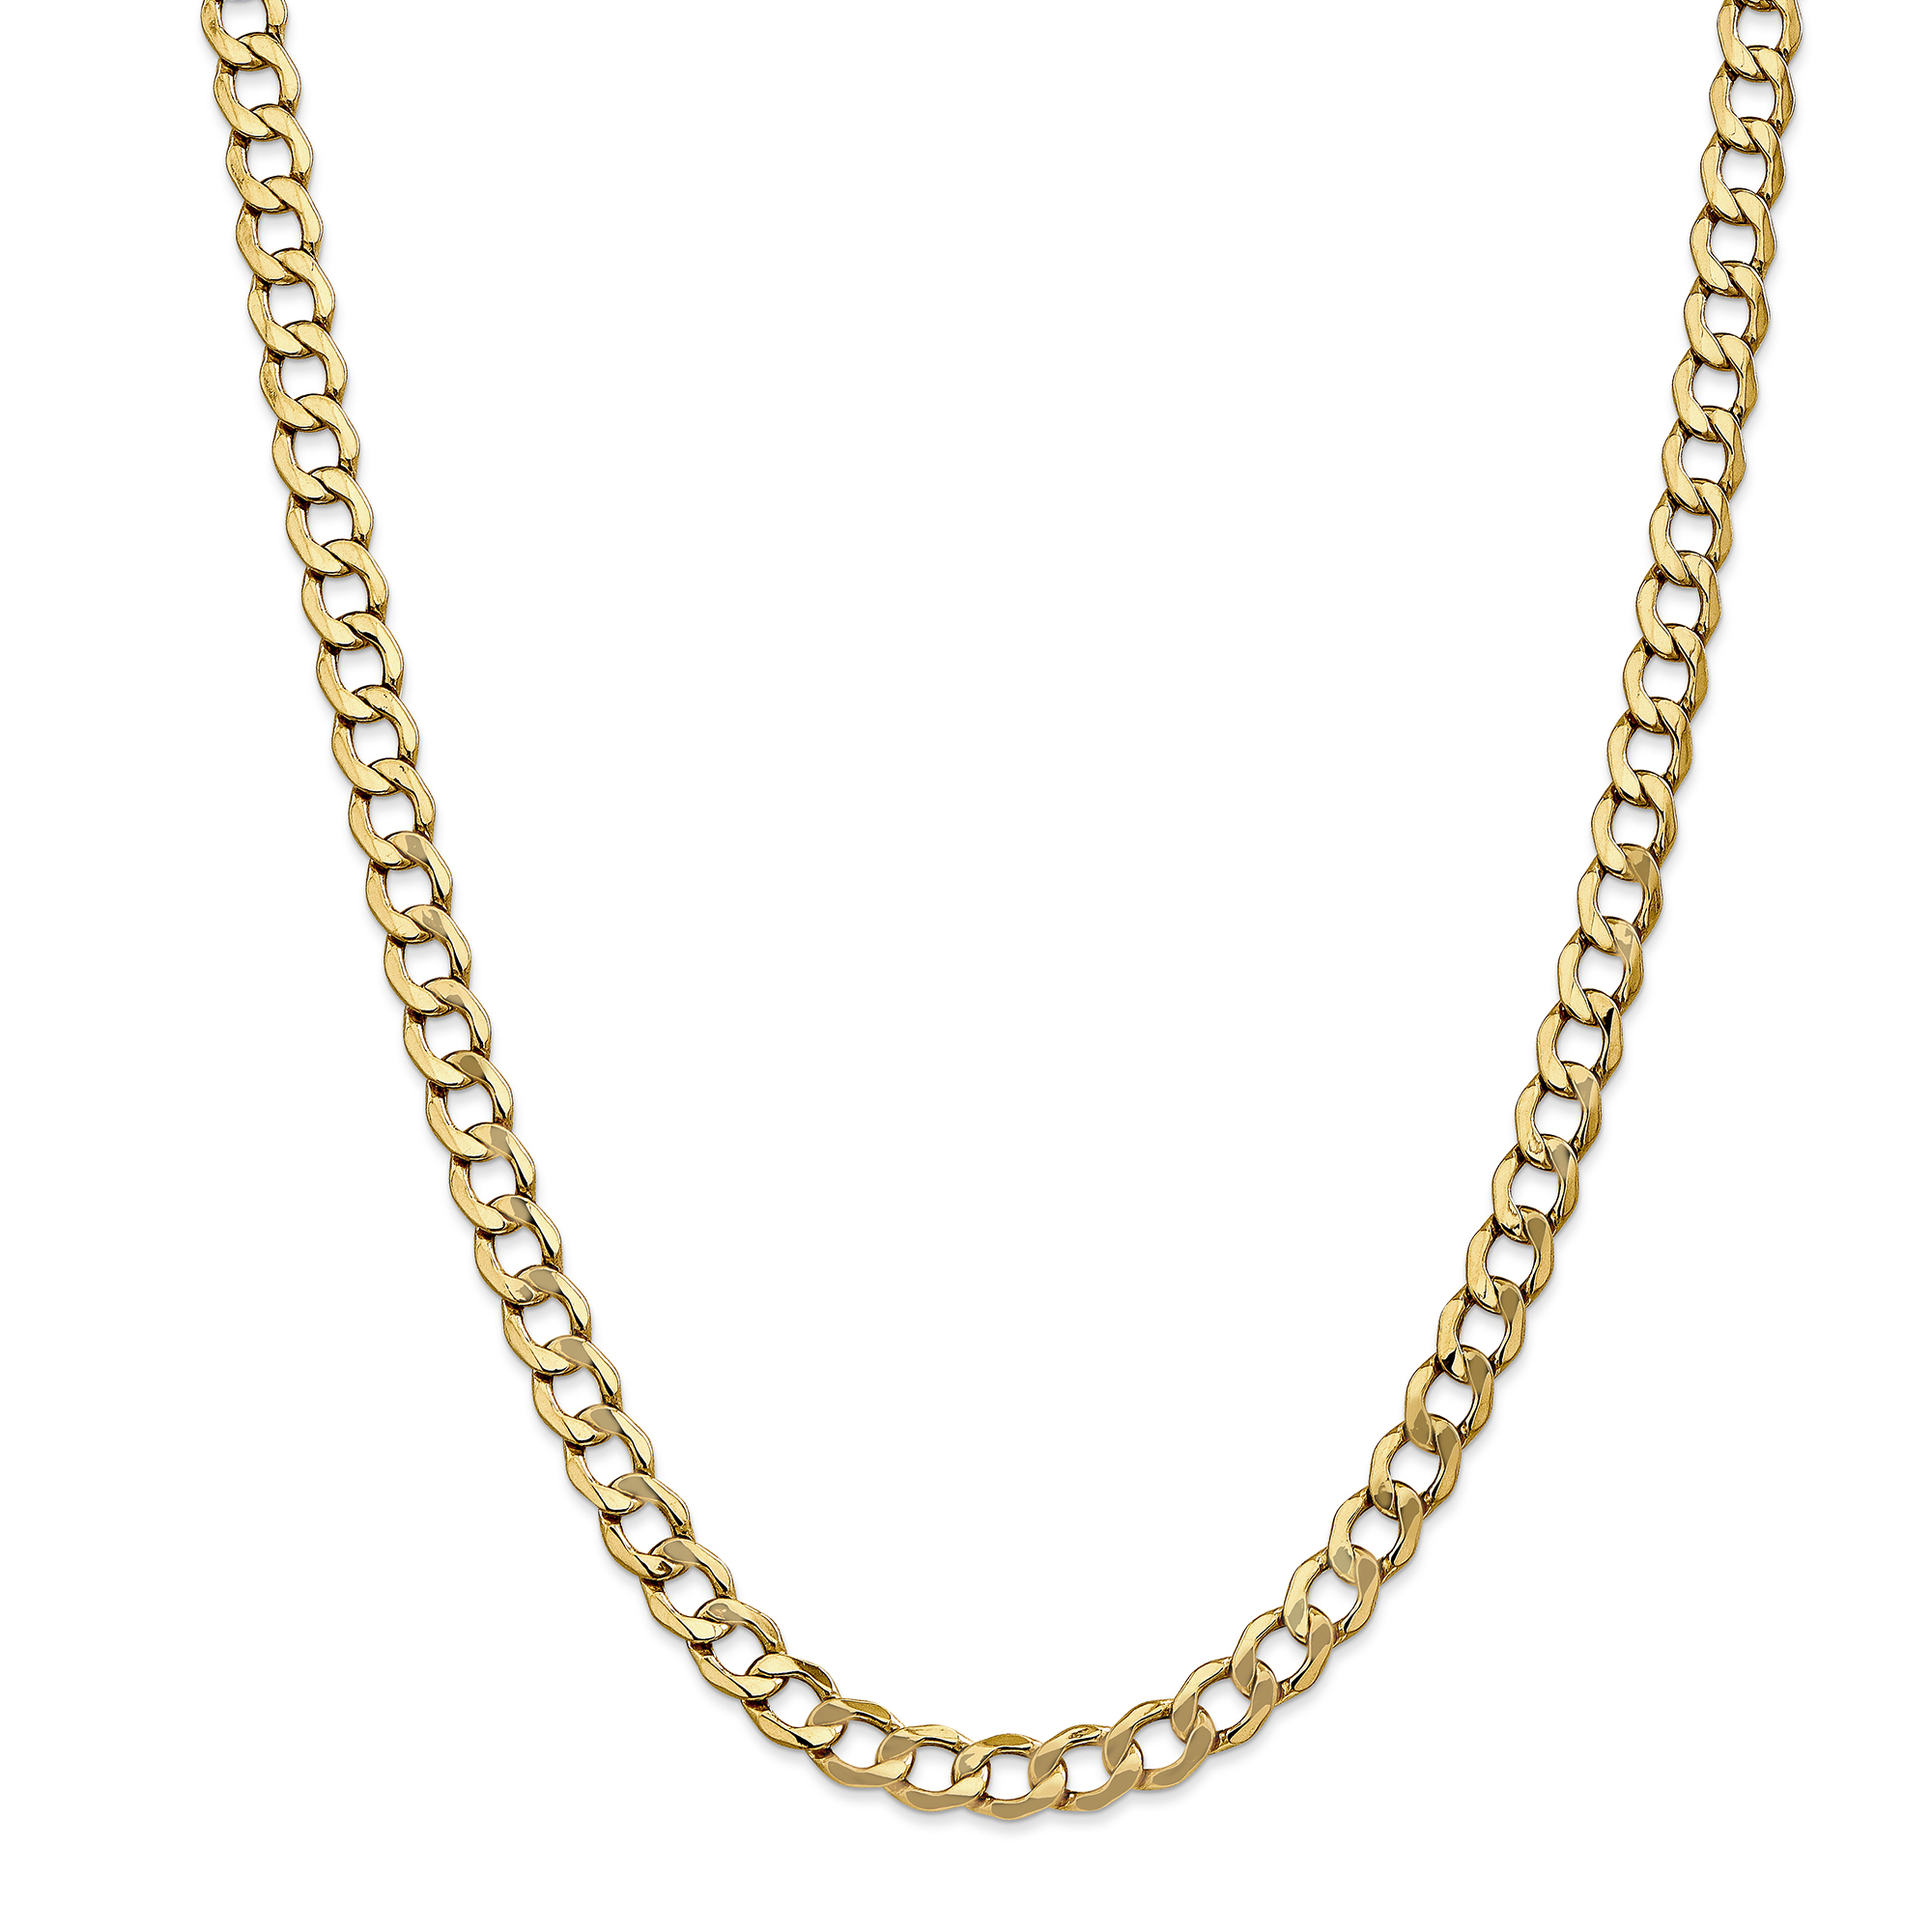 14k Yellow Gold 7mm Curb Cuban Link Chain Necklace 18 Inch Pendant Charm